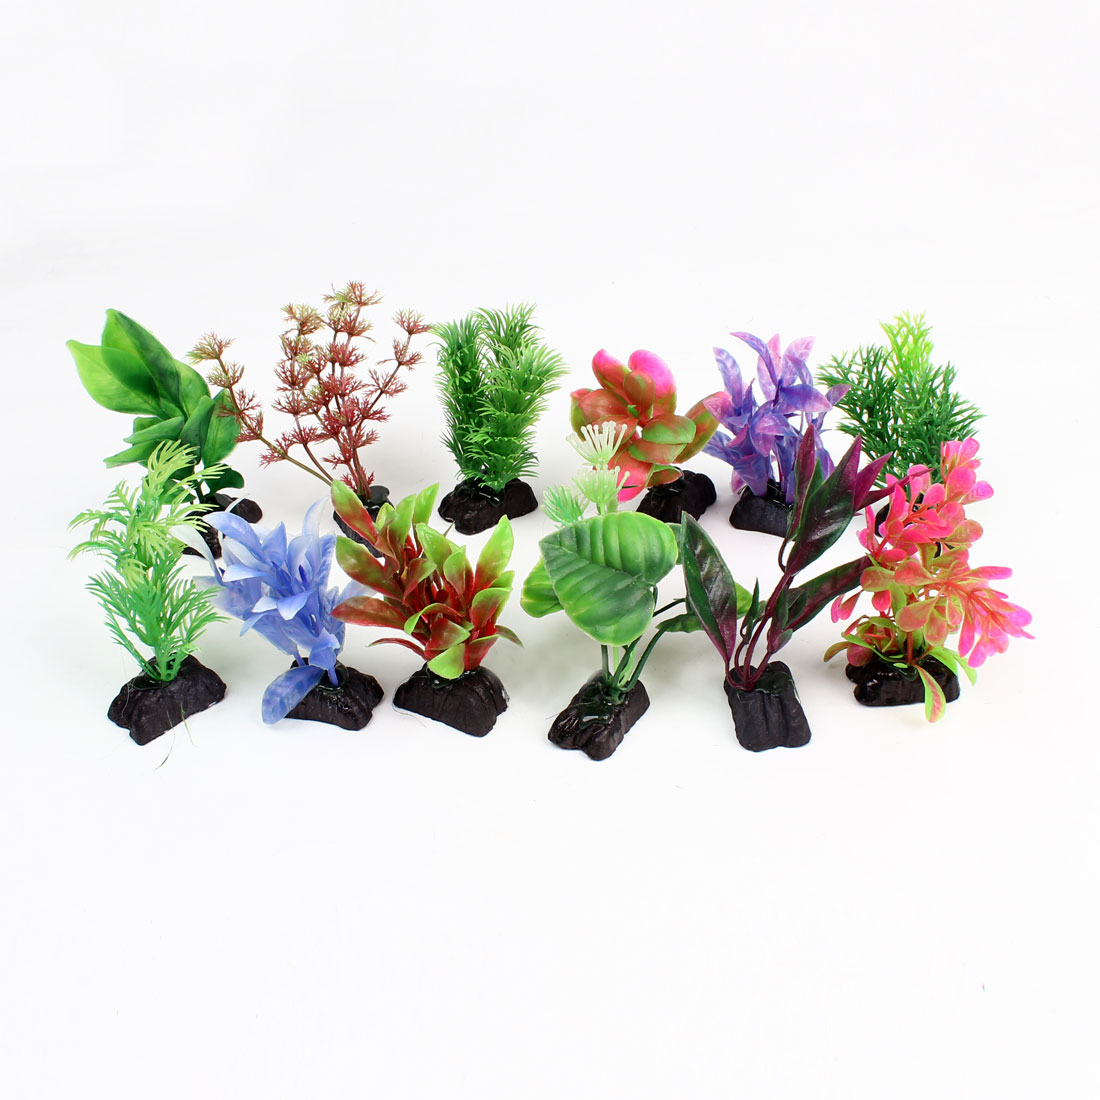 12 Pcs Assorted Color Aquarium Fish Tank Plastic Plant Grass 3.9""